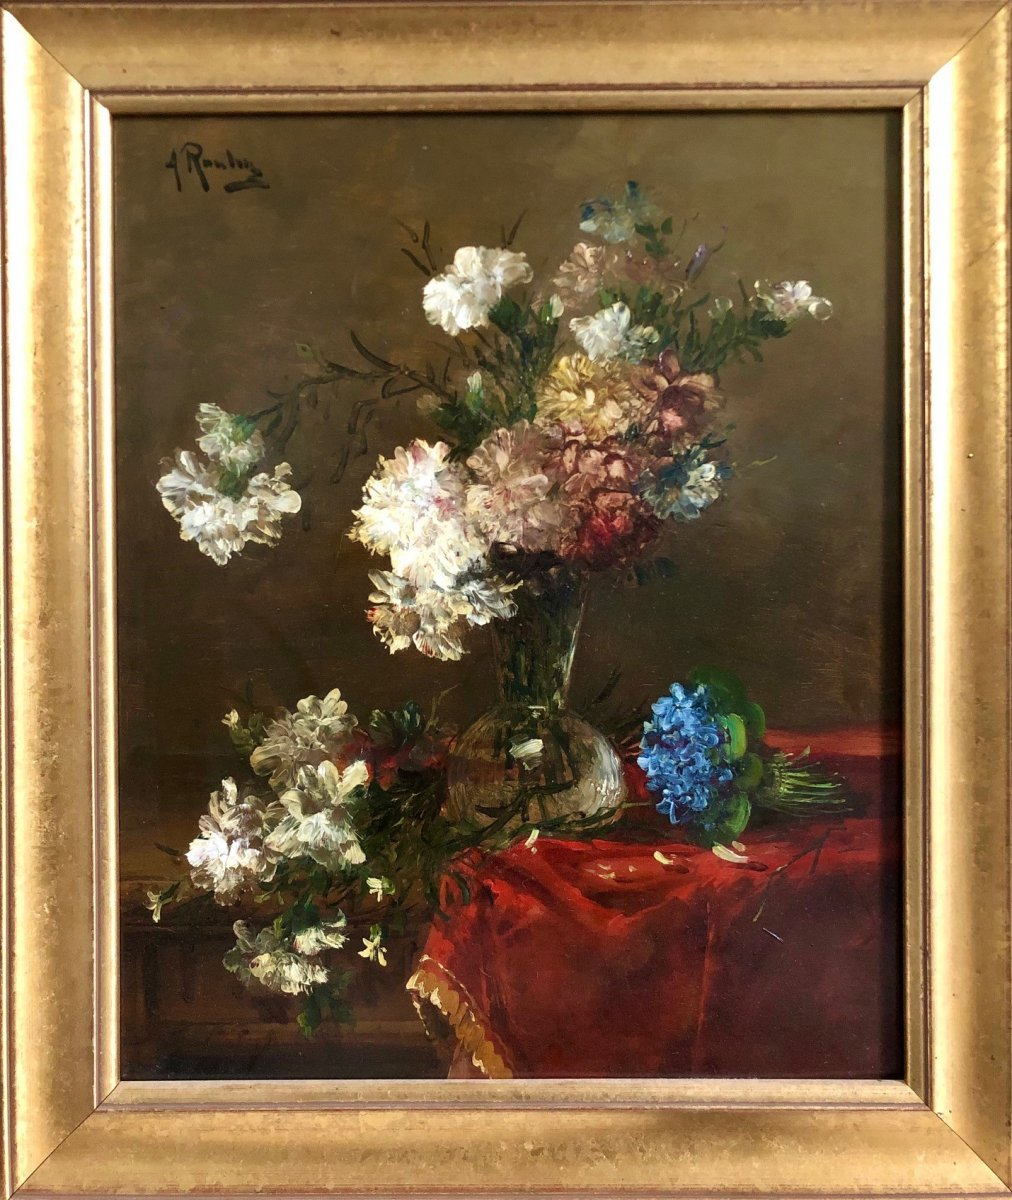 Still Flowers, Signed Alfred Rouby (1849-1909)